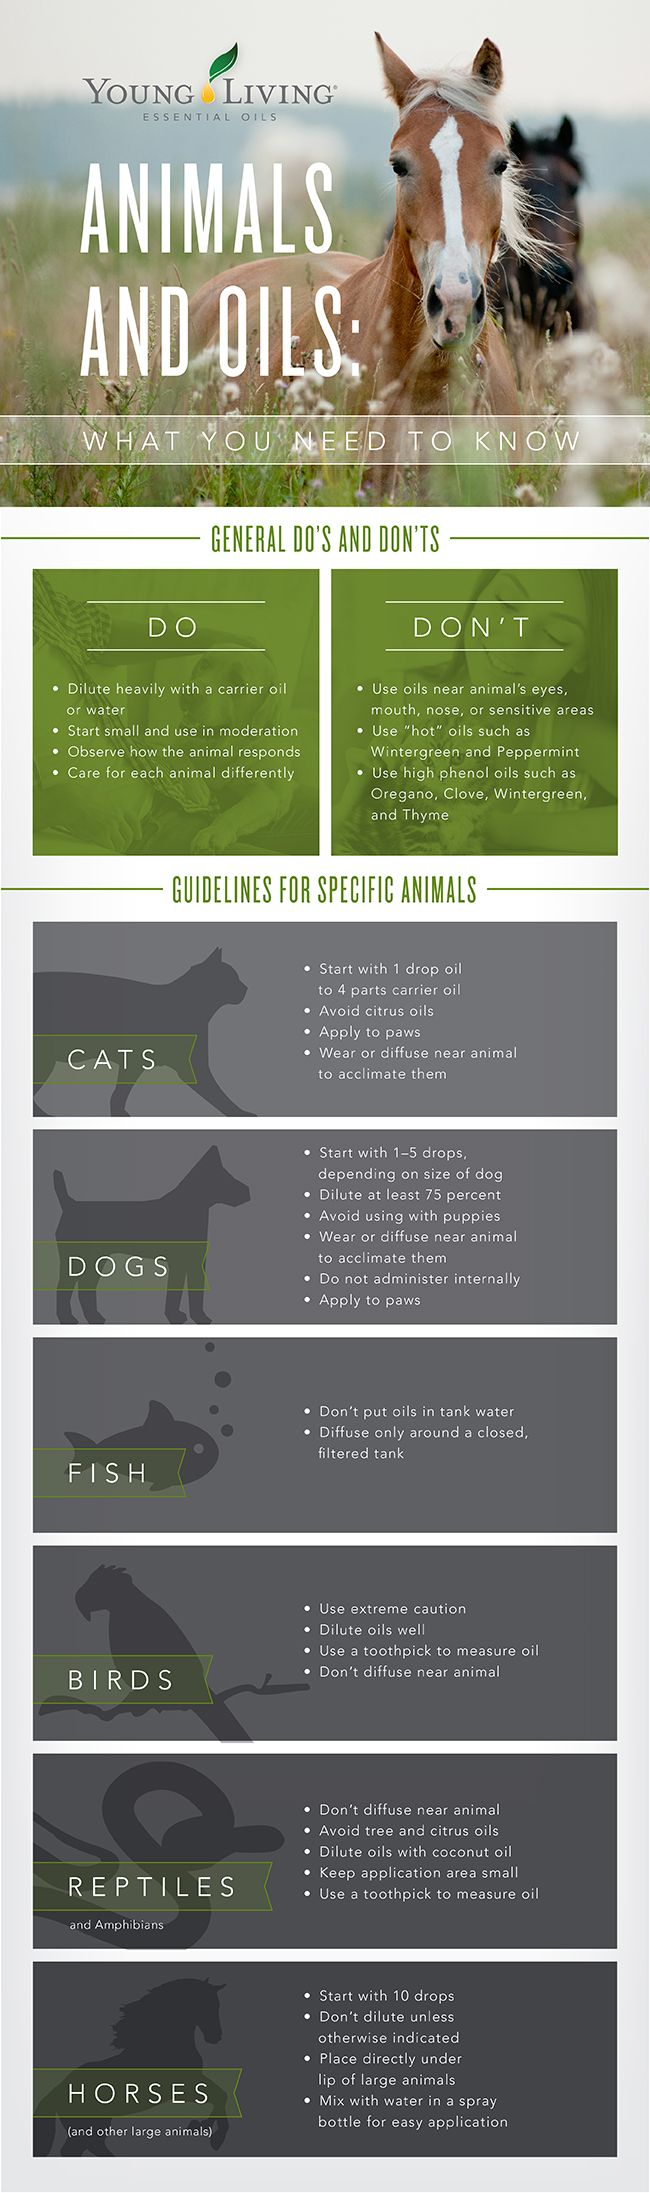 Essential oils and pets animals Pets and Animals Infographic - Young Living